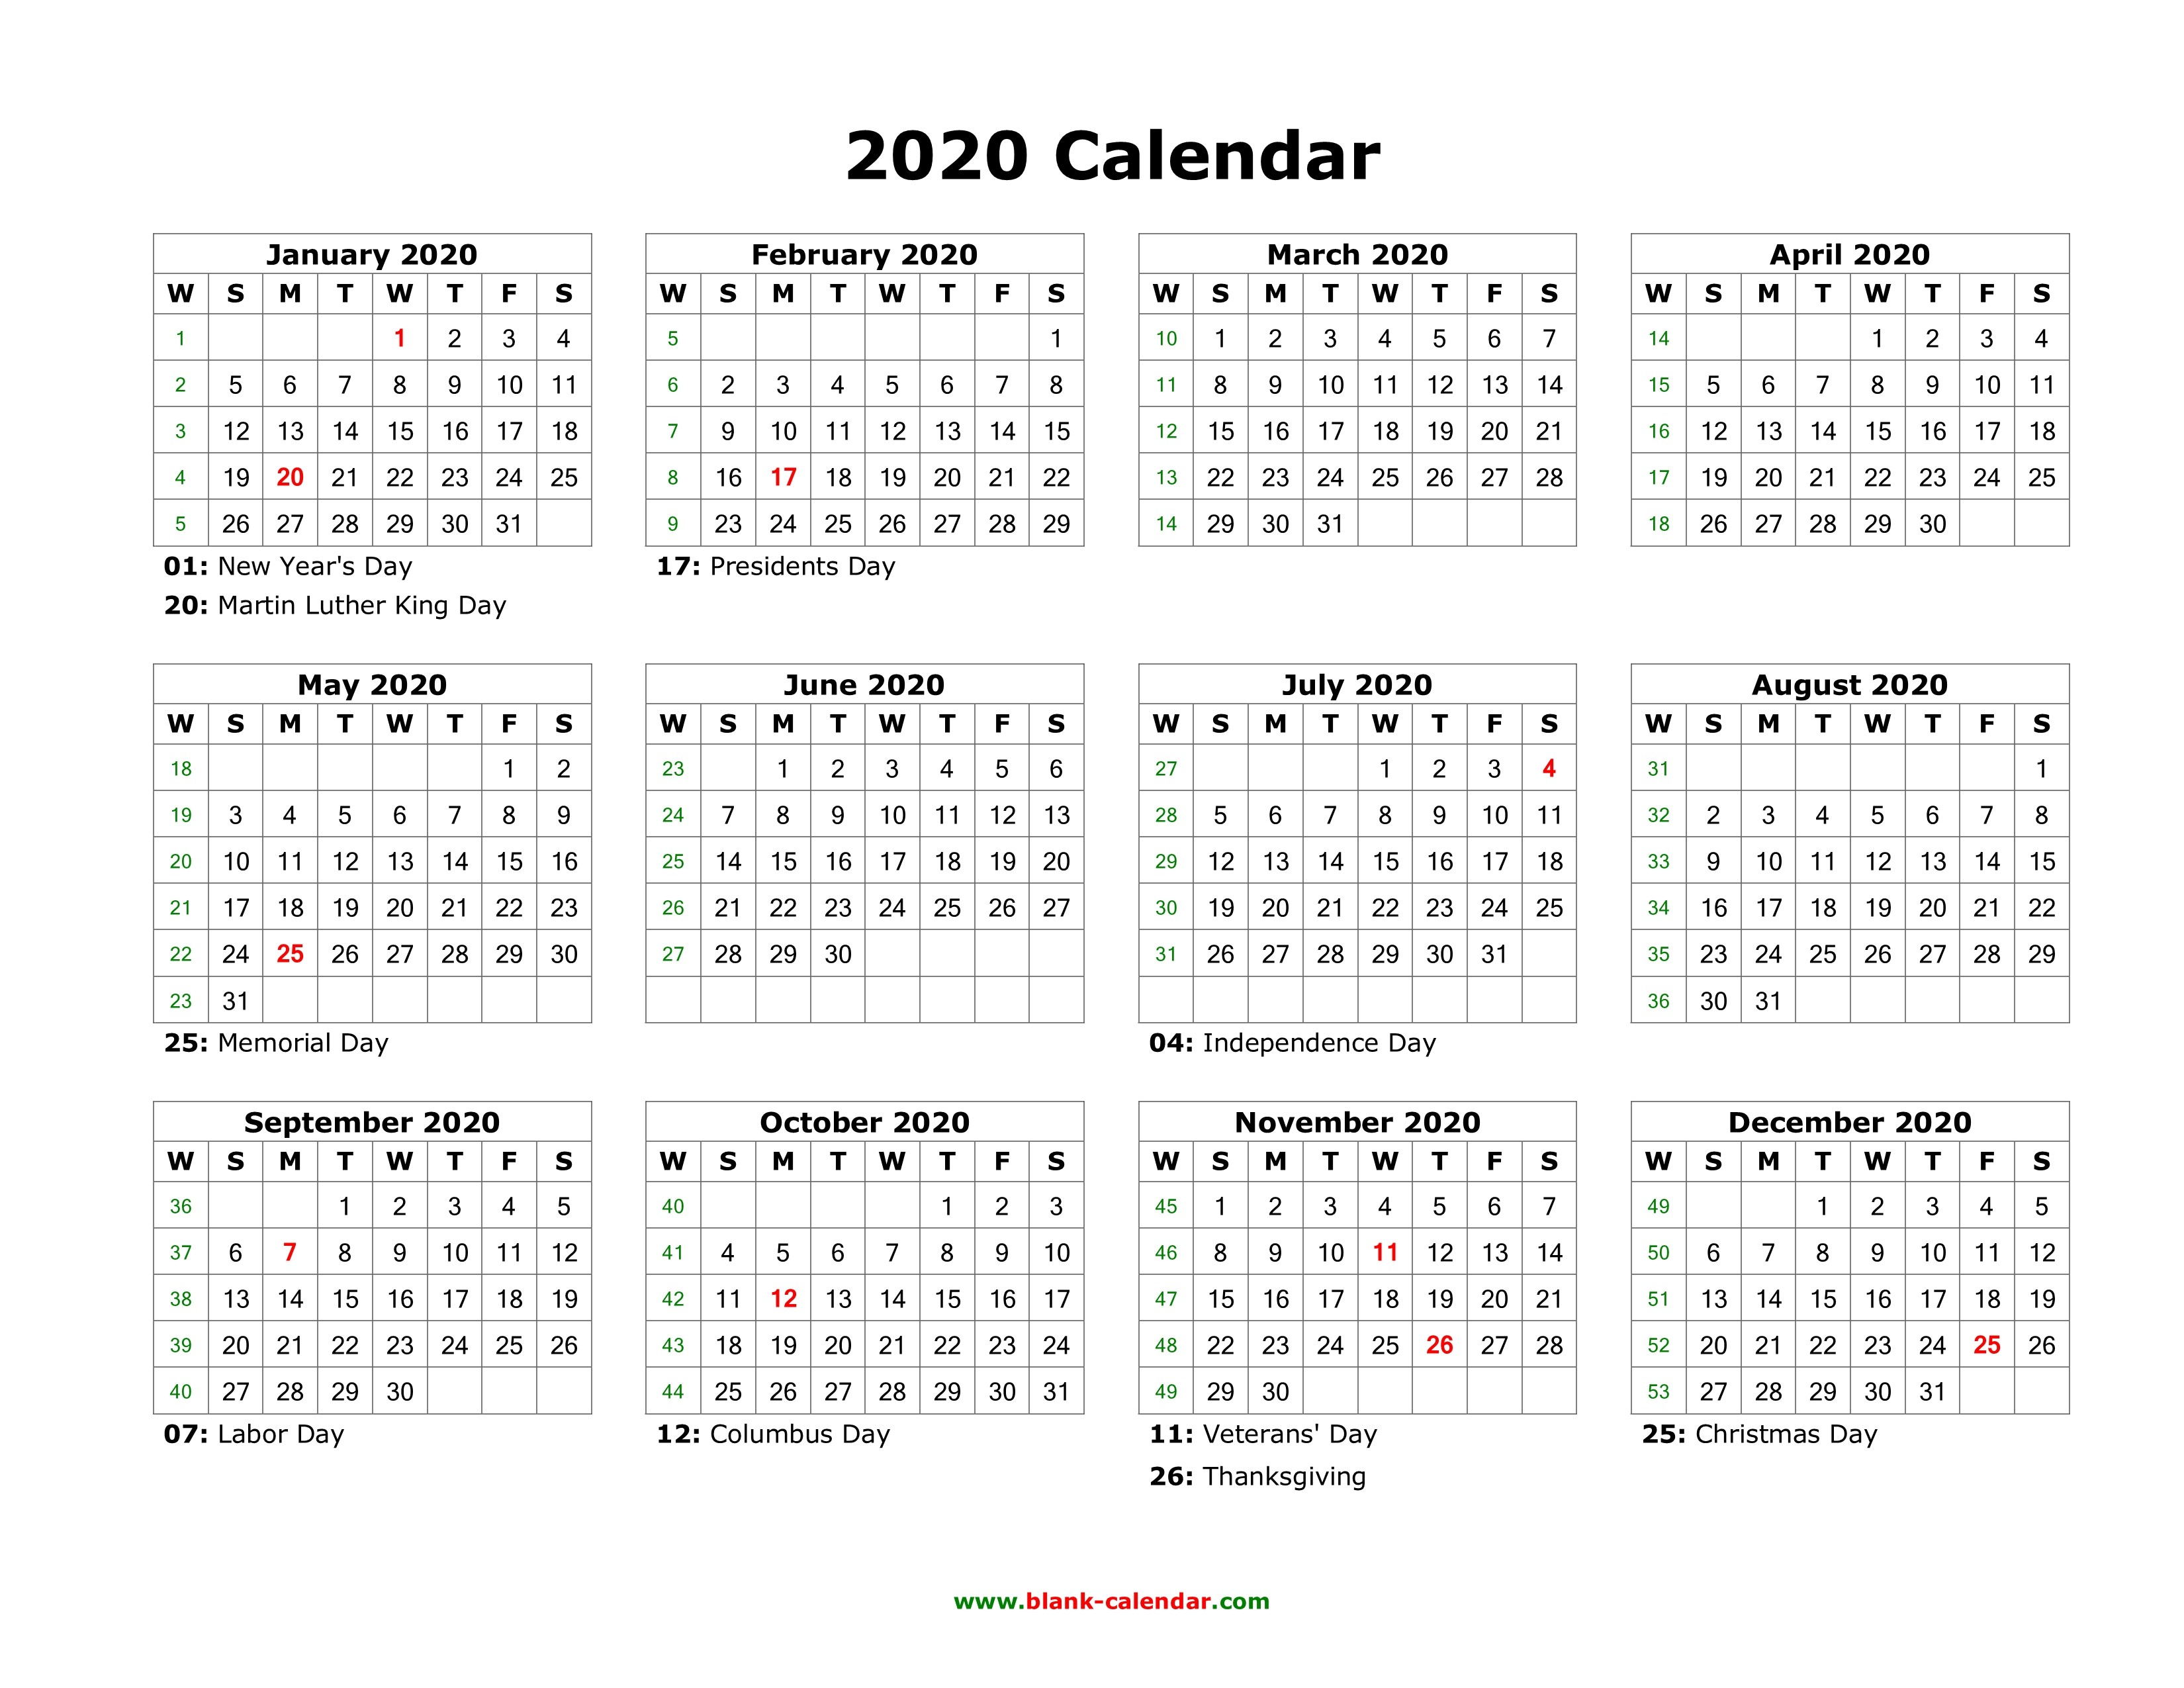 Free Calendar 2020 Printable Download Blank Calendar 2020 with Us Holidays 12 Months